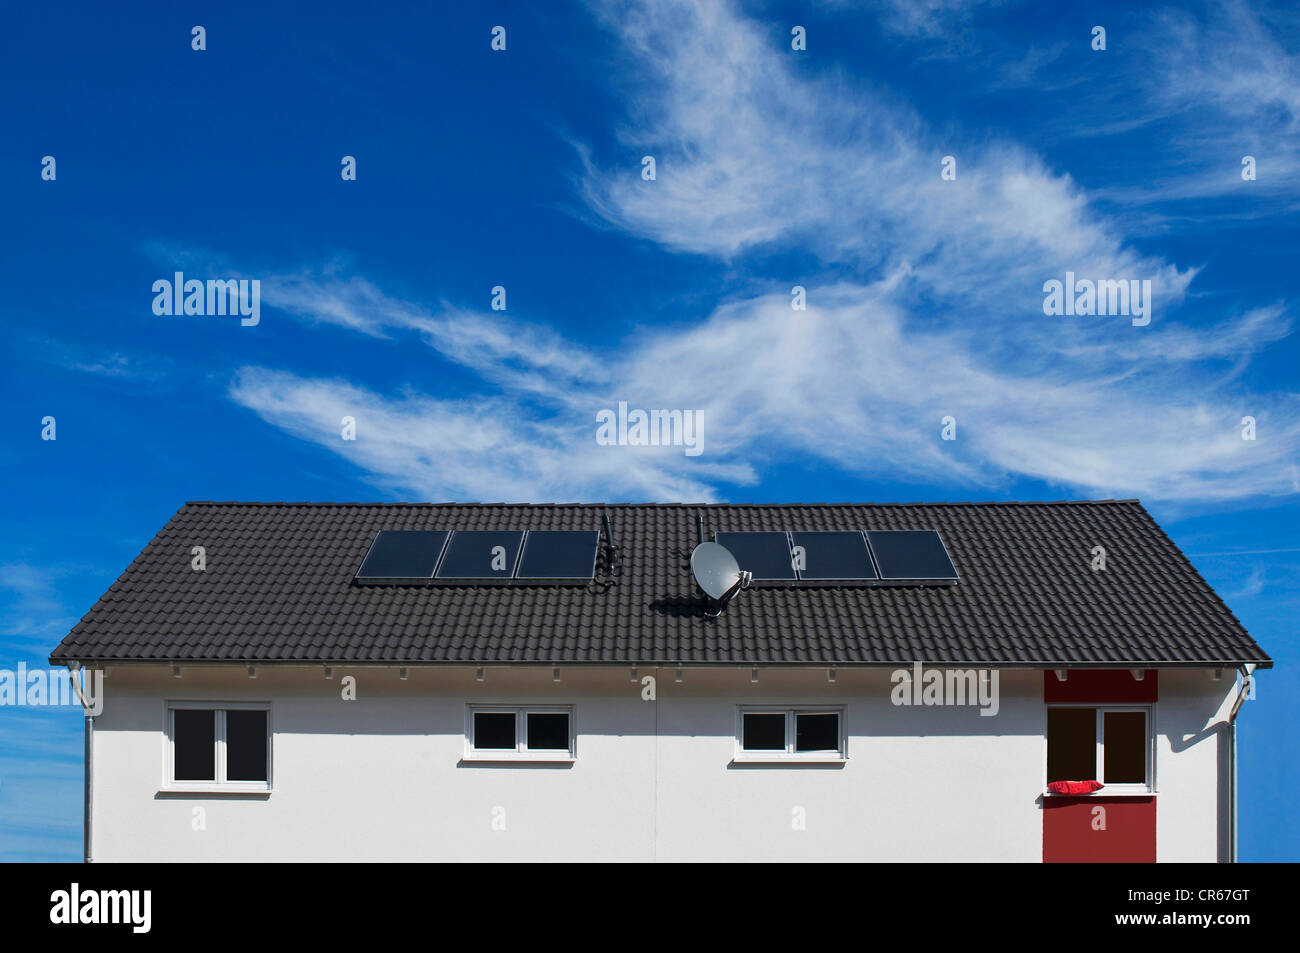 Residential building with solar panels for water heating on the roof, solar heat, Rhein-Erft Kreis district - Stock Image